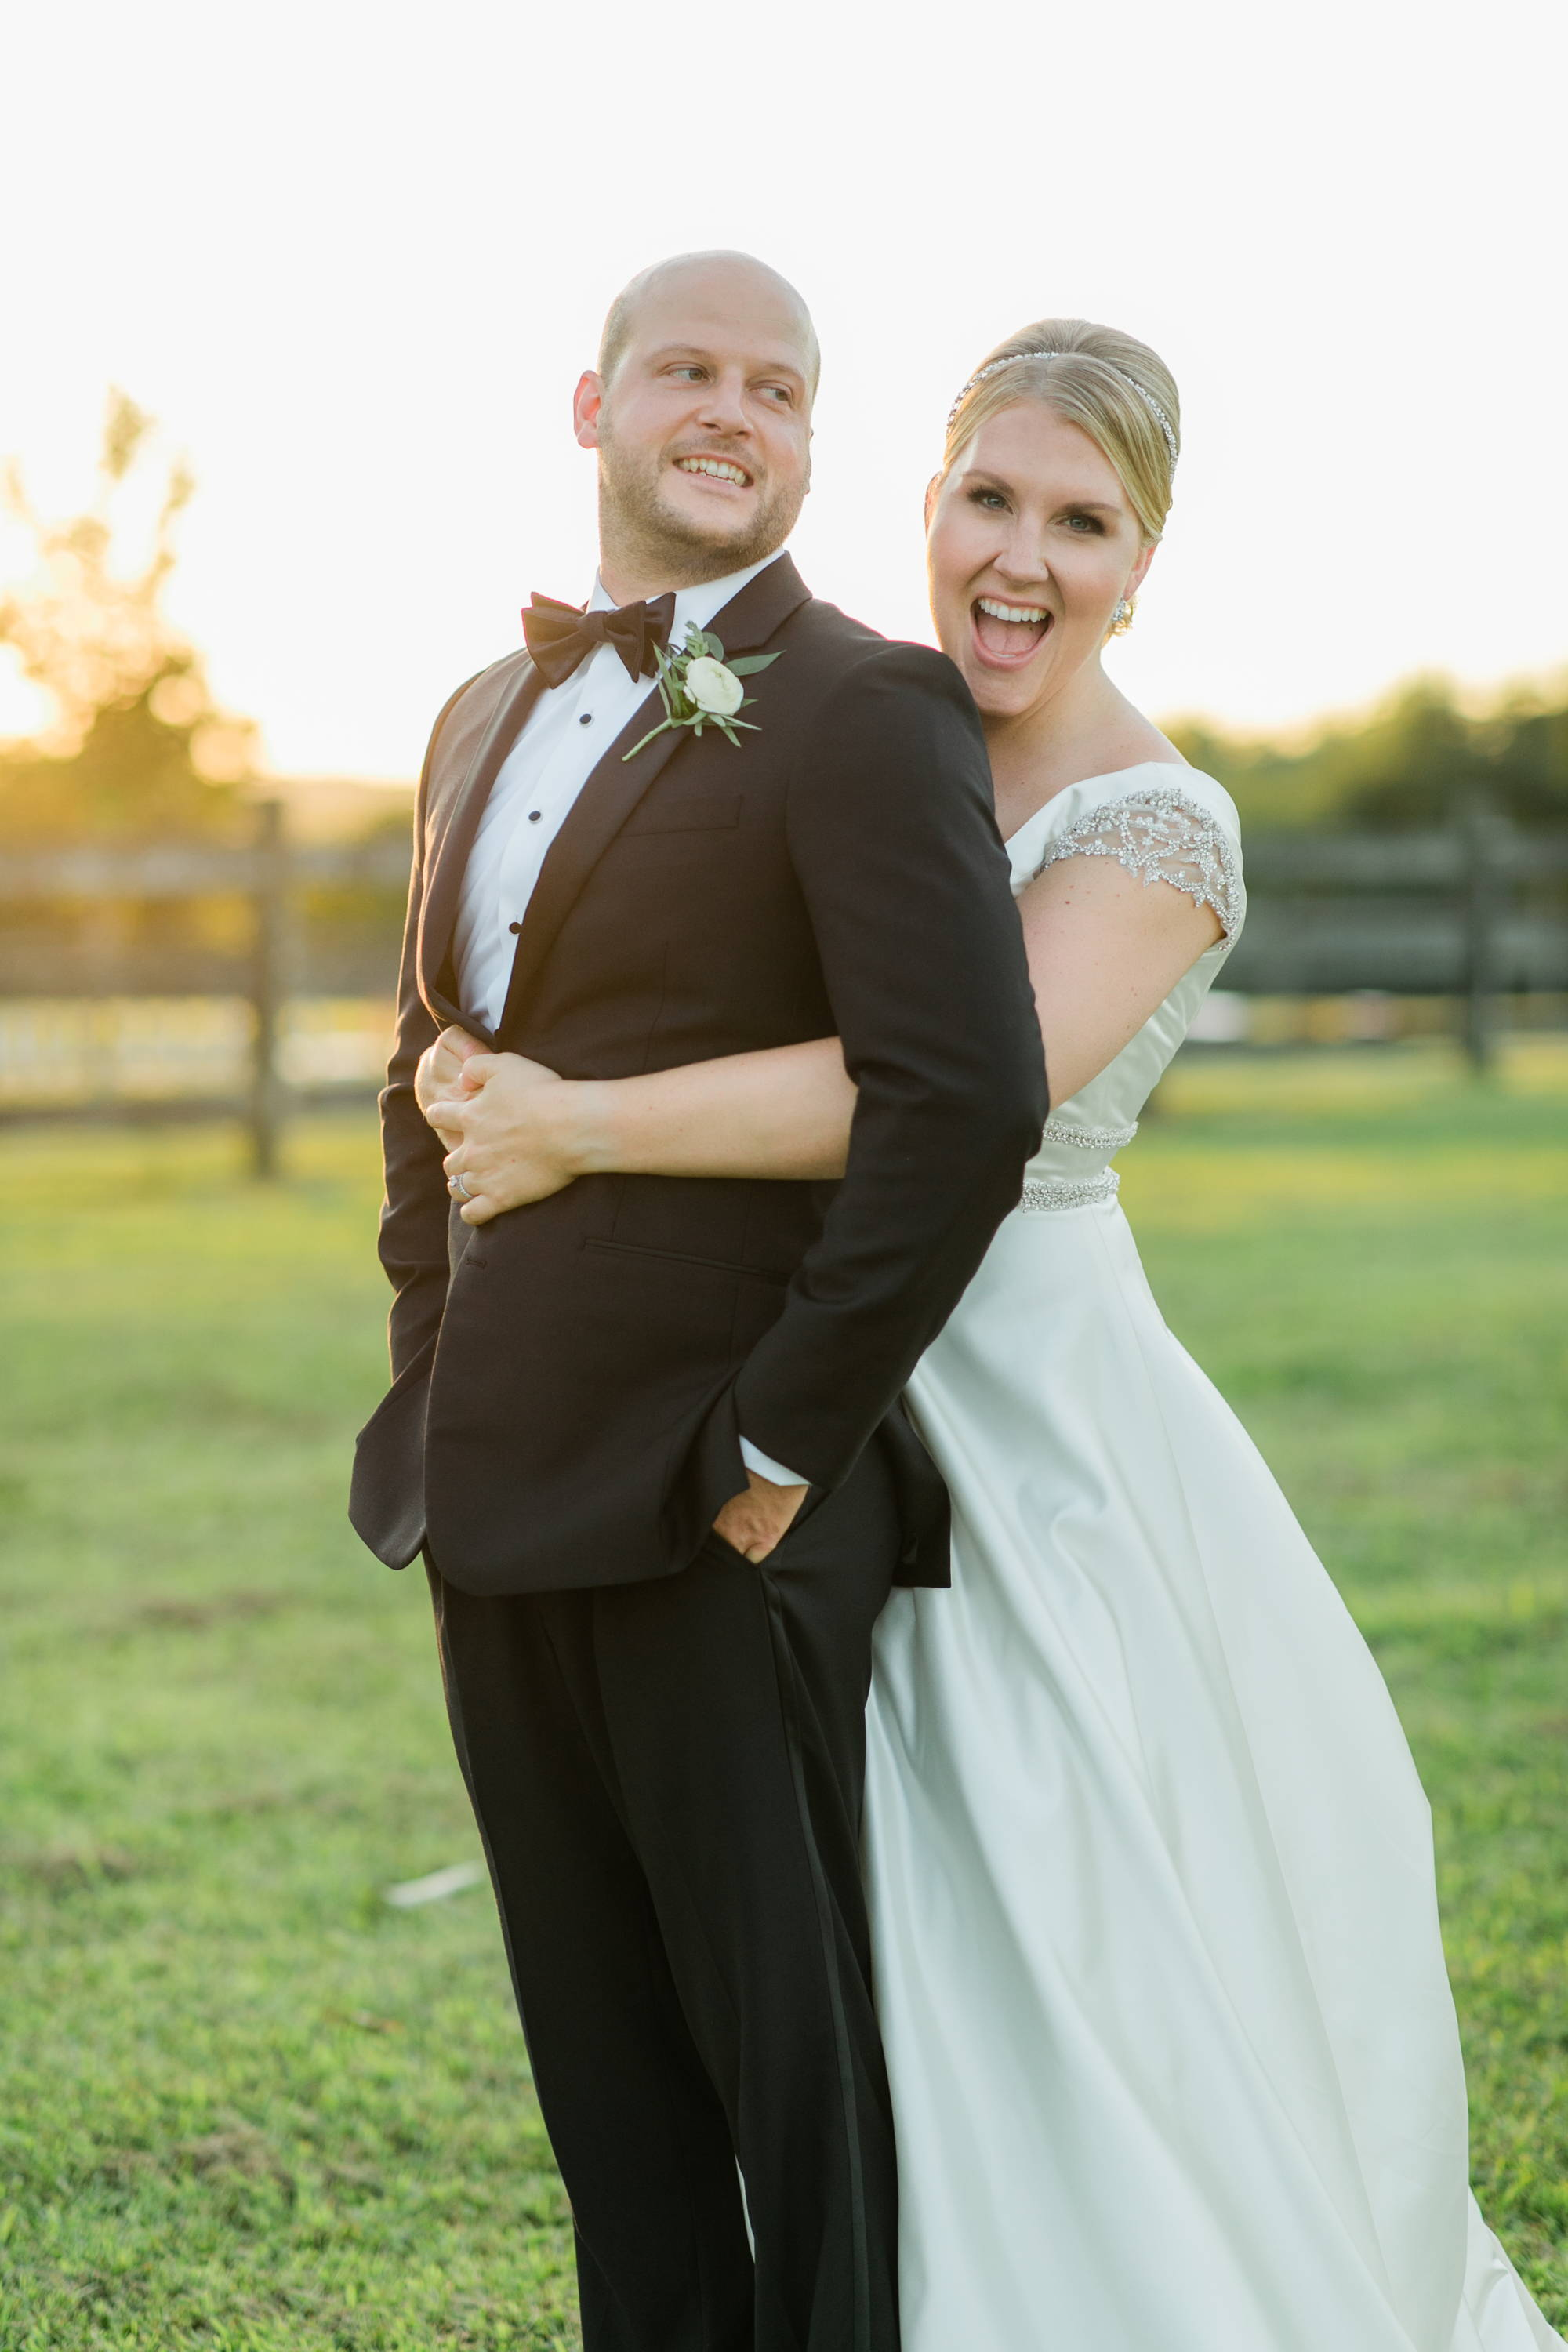 Henne Engagement Ring Couple Charlie & Skylar Smiling Outdoors on Their Wedding Day